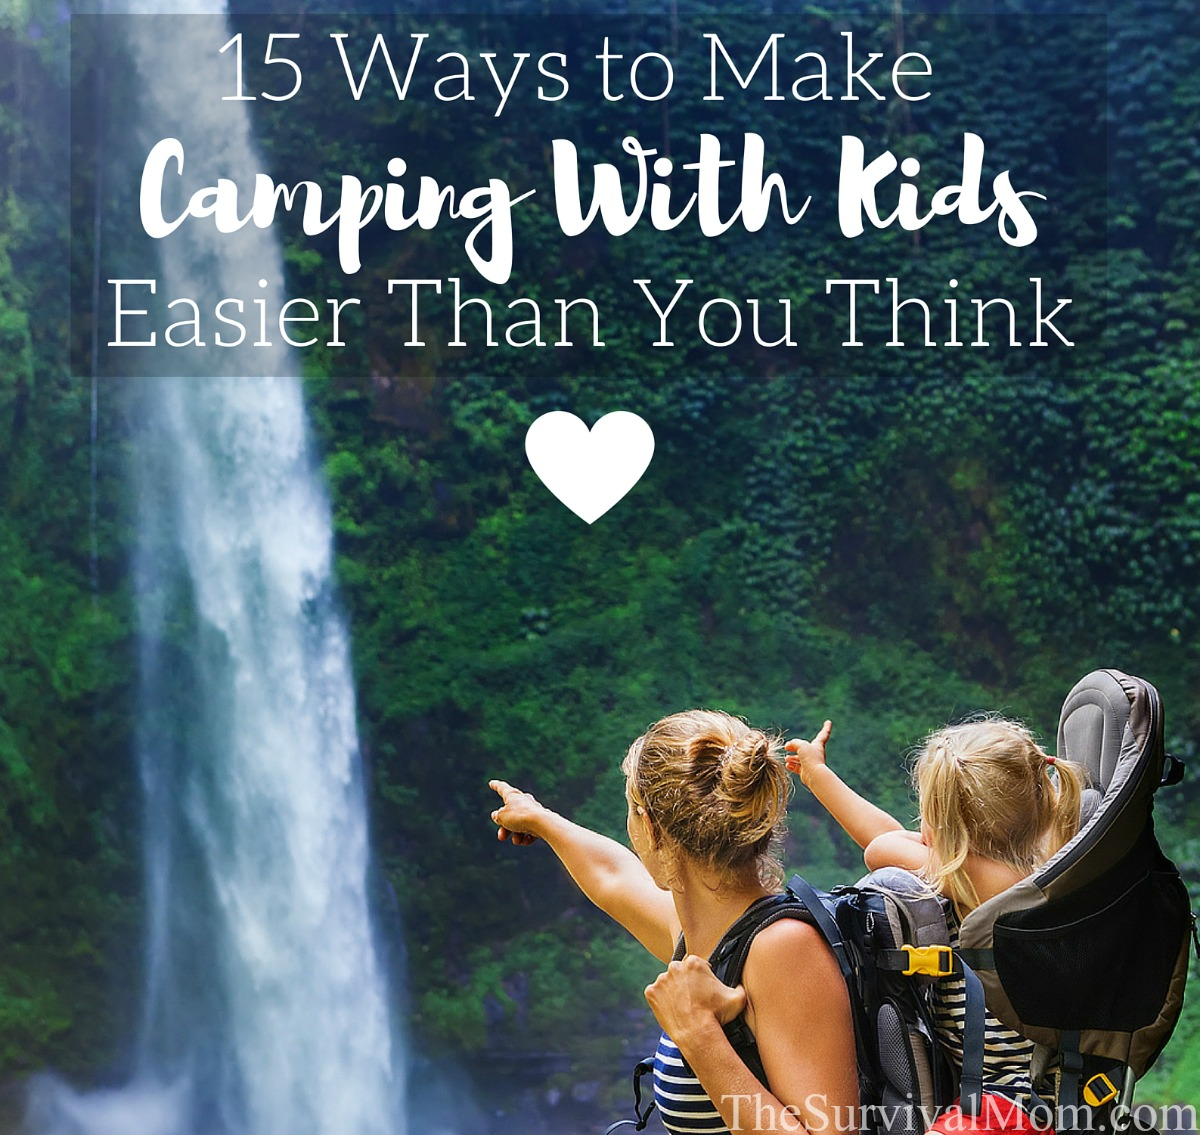 15 Ways to Make Camping With Kids Easier Than You Think via The Survival Mom